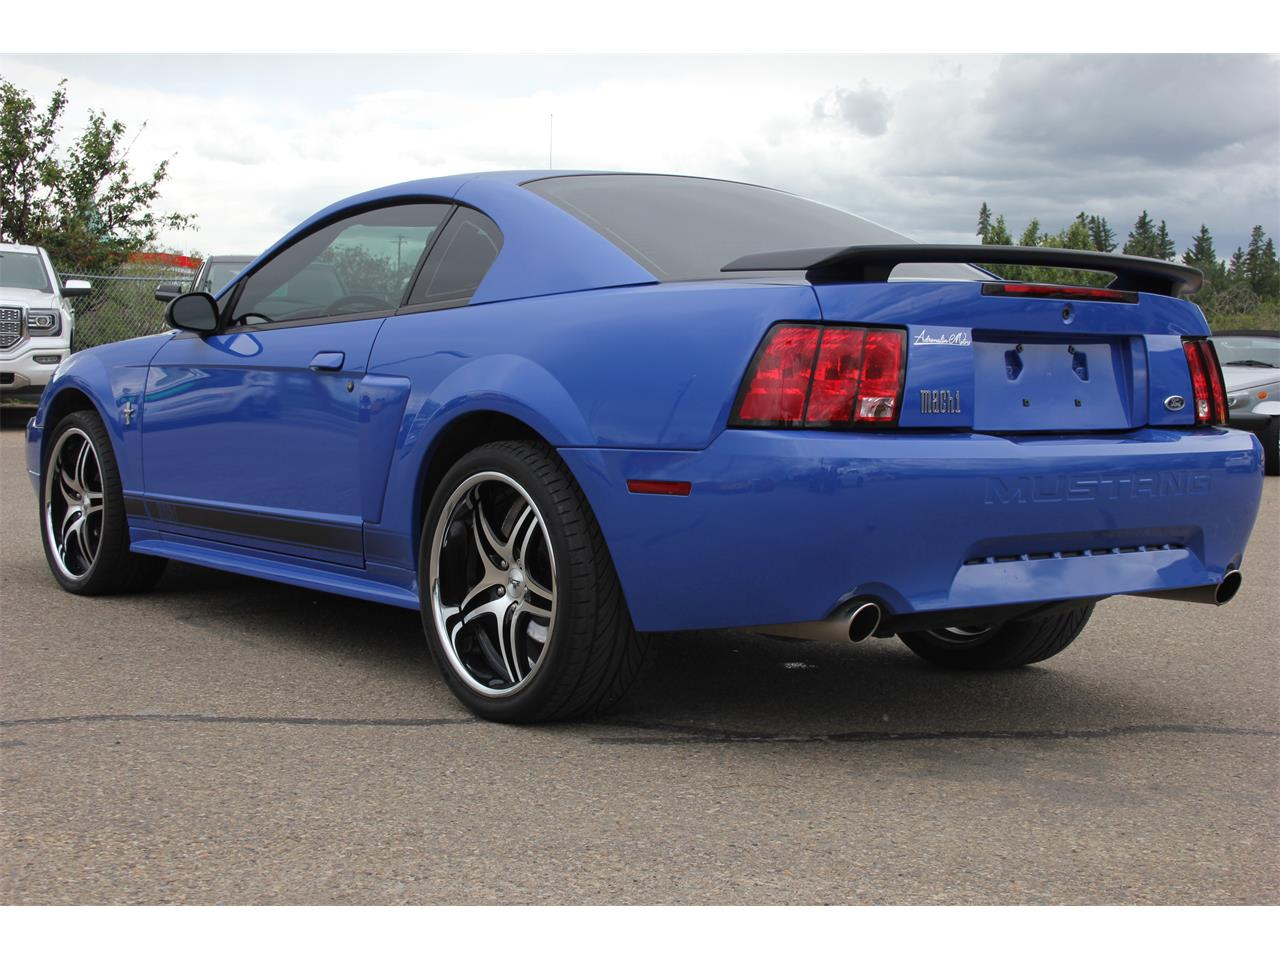 2003 Ford Mustang Mach 1 for Sale | ClassicCars.com | CC ...